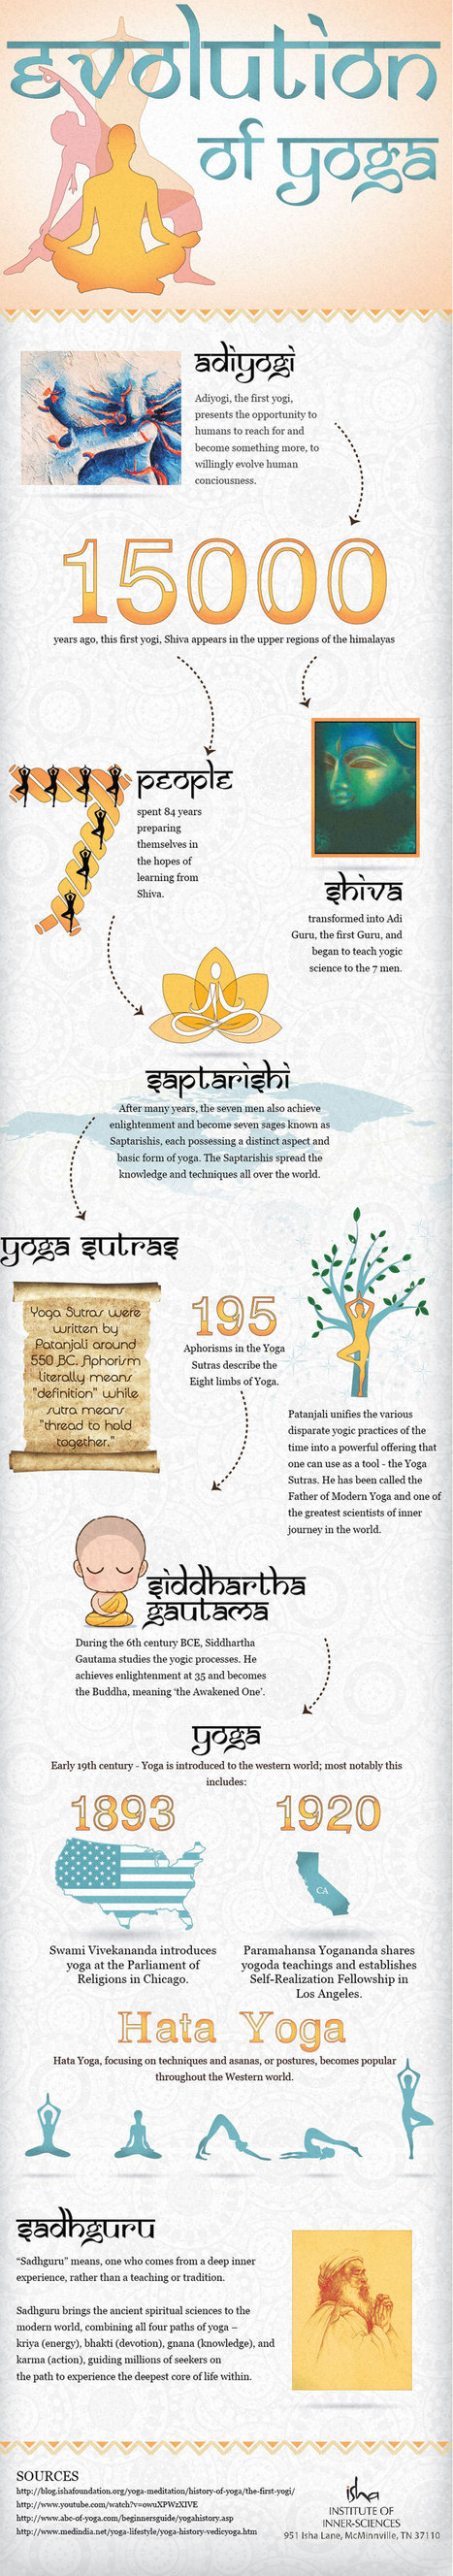 The Evolution of Yoga - Infographic | transerfing&EN | Scoop.it